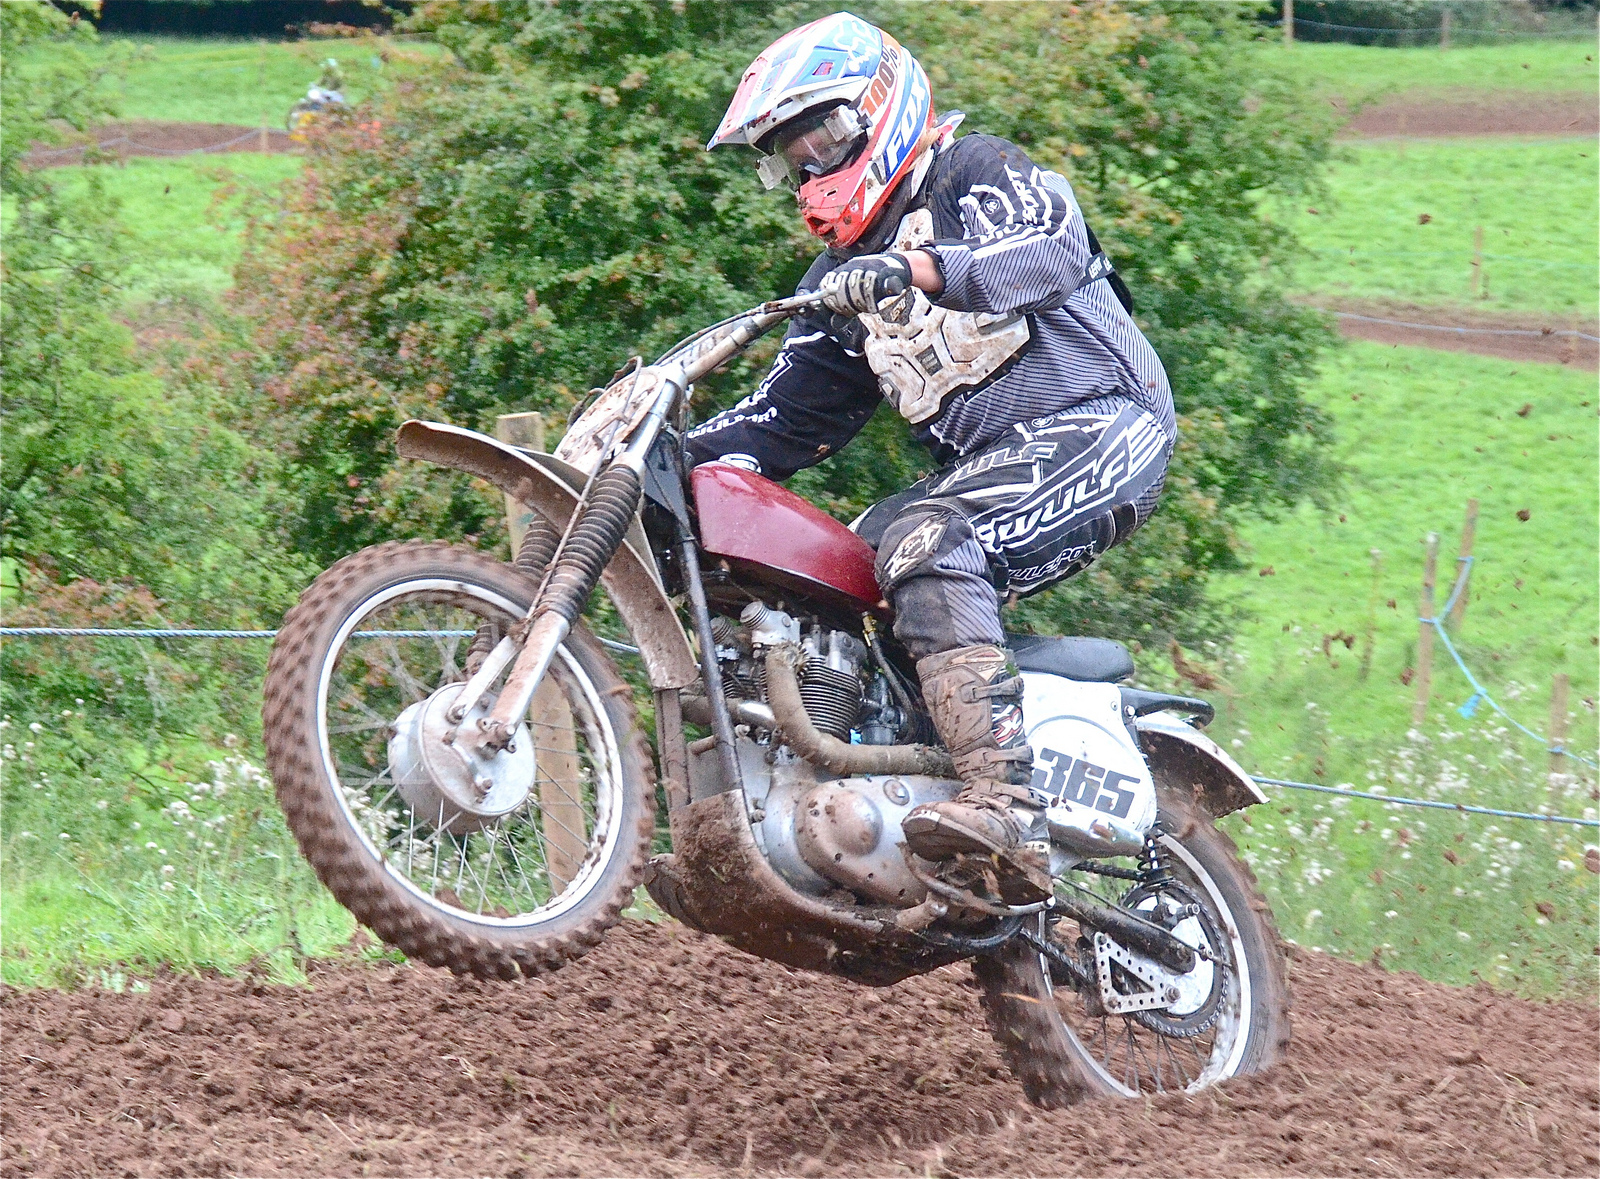 Llanthony Classic Scramble Photos September 2015 classicdirtbikerider.com..46